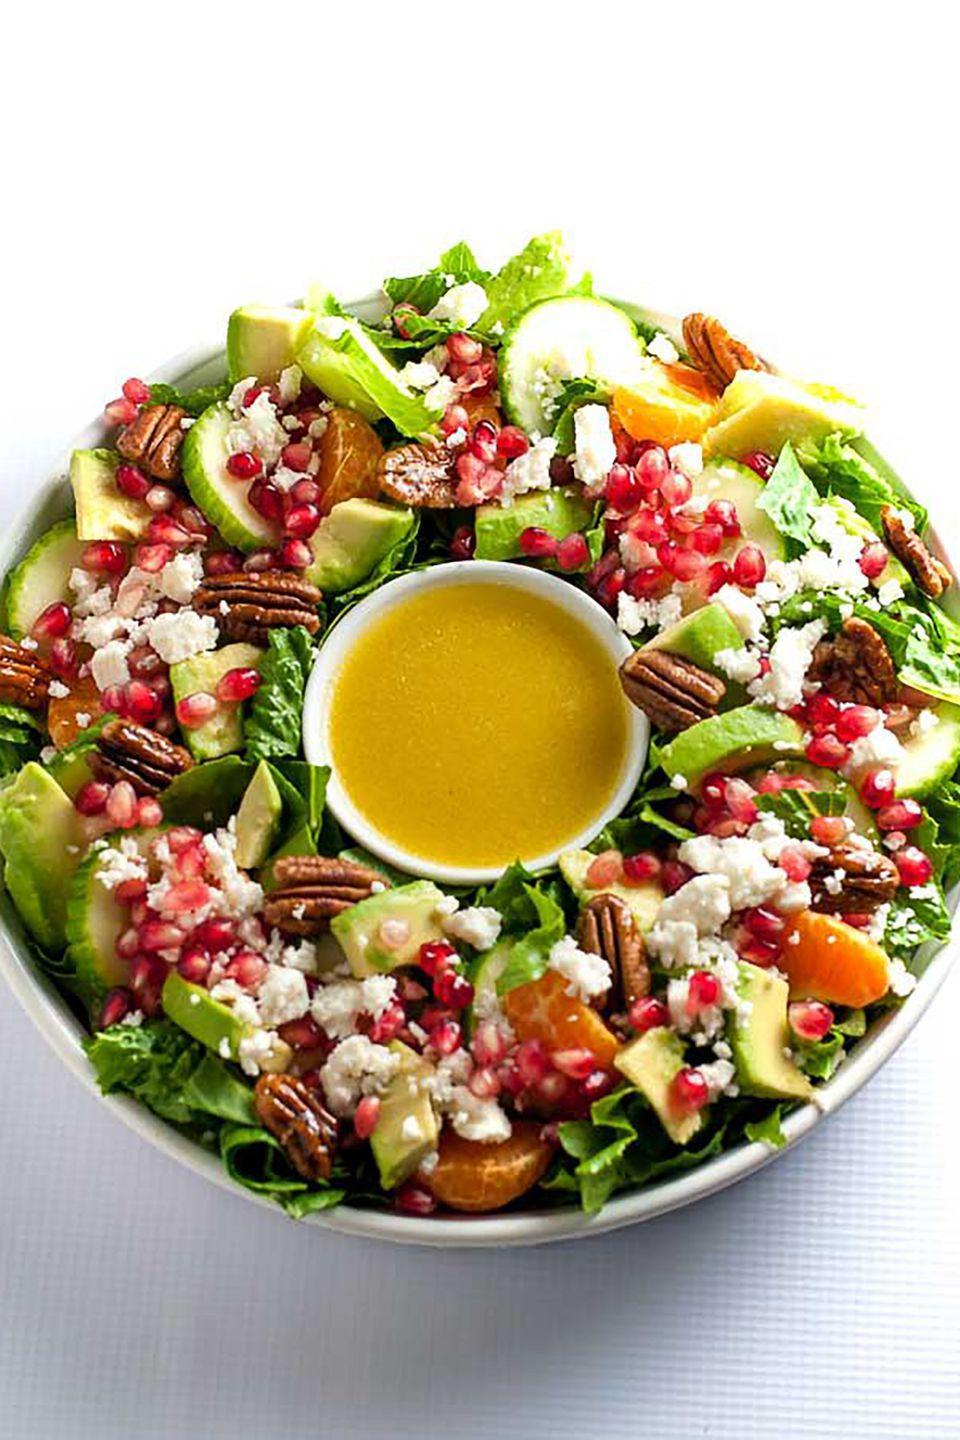 """<p>This salad uses seasonal fruits like pomegranate and mandarins for a light, citrusy lunch. Arrange it to look like a wreath for an extra fun holiday touch.</p><p><strong>Get the recipe at <a href=""""https://www.flavourandsavour.com/pomegranate-mandarin-salad-avocado-feta/"""" rel=""""nofollow noopener"""" target=""""_blank"""" data-ylk=""""slk:Flavour & Savour"""" class=""""link rapid-noclick-resp"""">Flavour & Savour</a>.</strong><br></p>"""